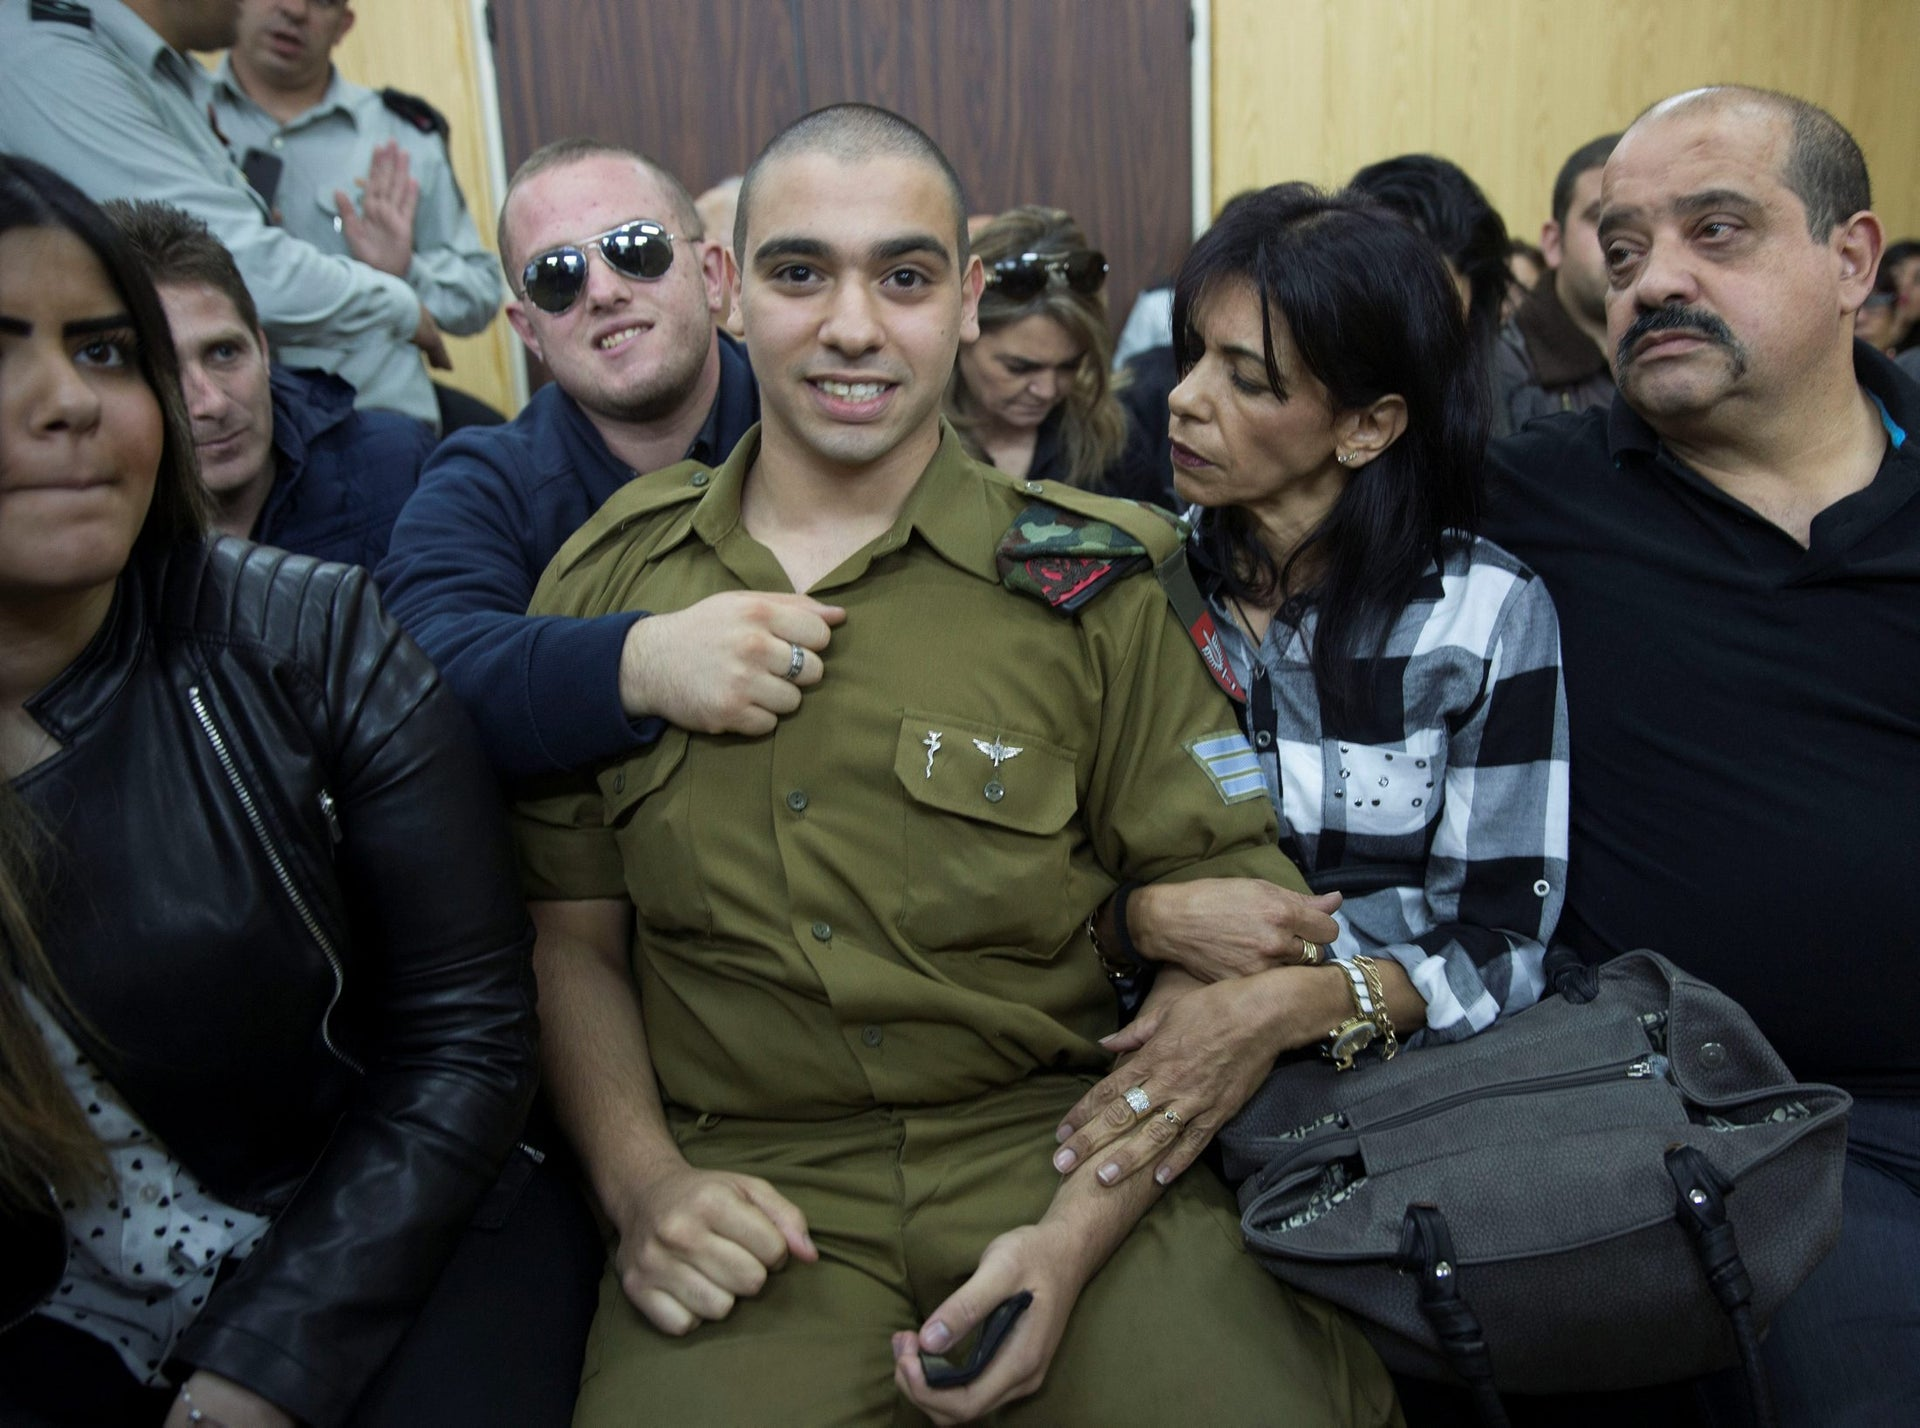 Israeli soldier Elor Azaria, who is charged with manslaughter by the Israeli military, sits to hear his verdict in a military court in Tel Aviv, Israel, January 4, 2017